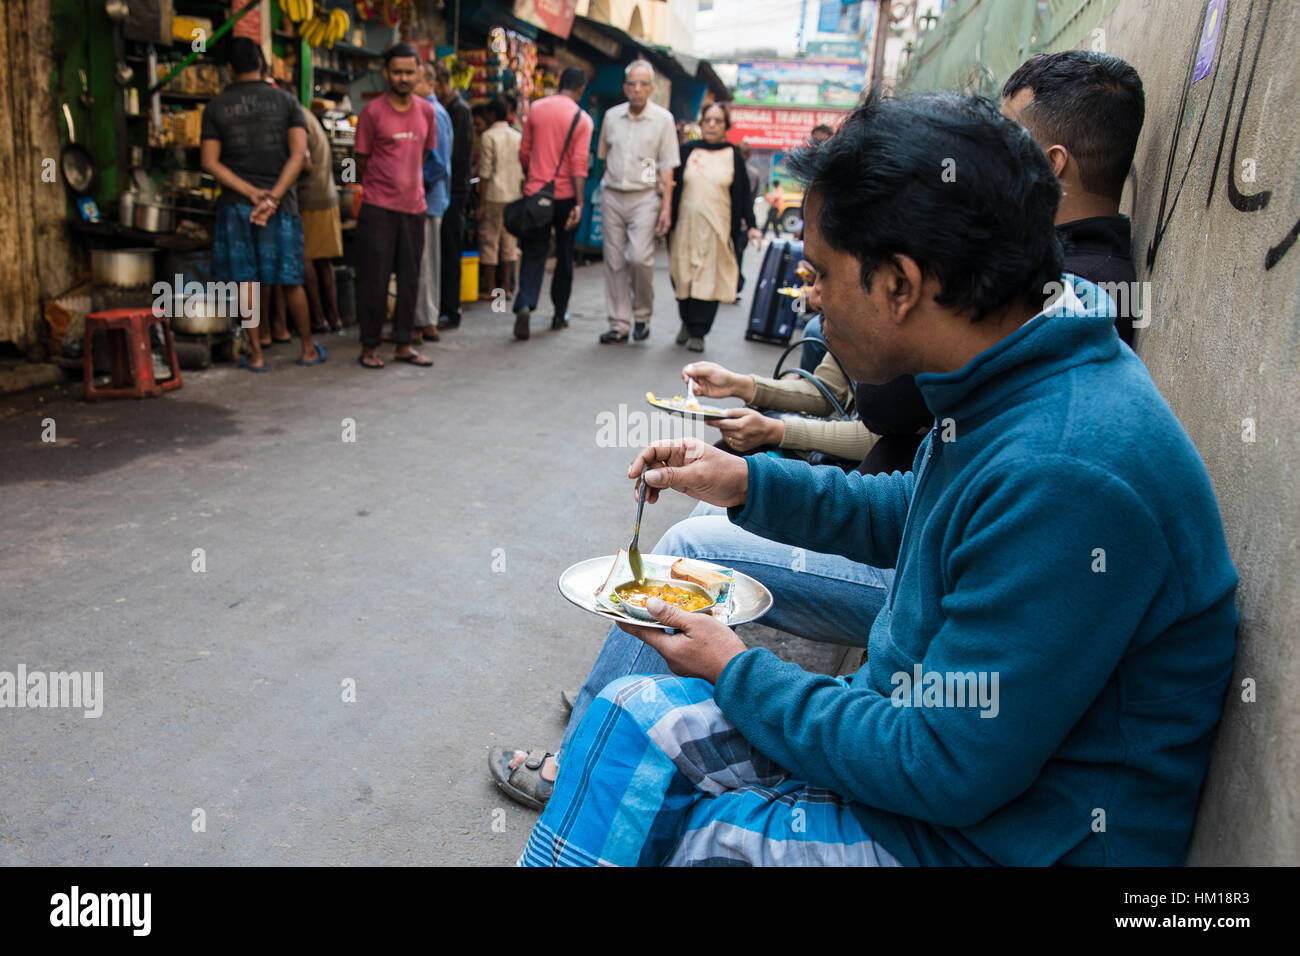 A mean eats breakfast from a street stall on Hertford Lane in Kolkata (Calcutta), West Bengal, India. - Stock Image